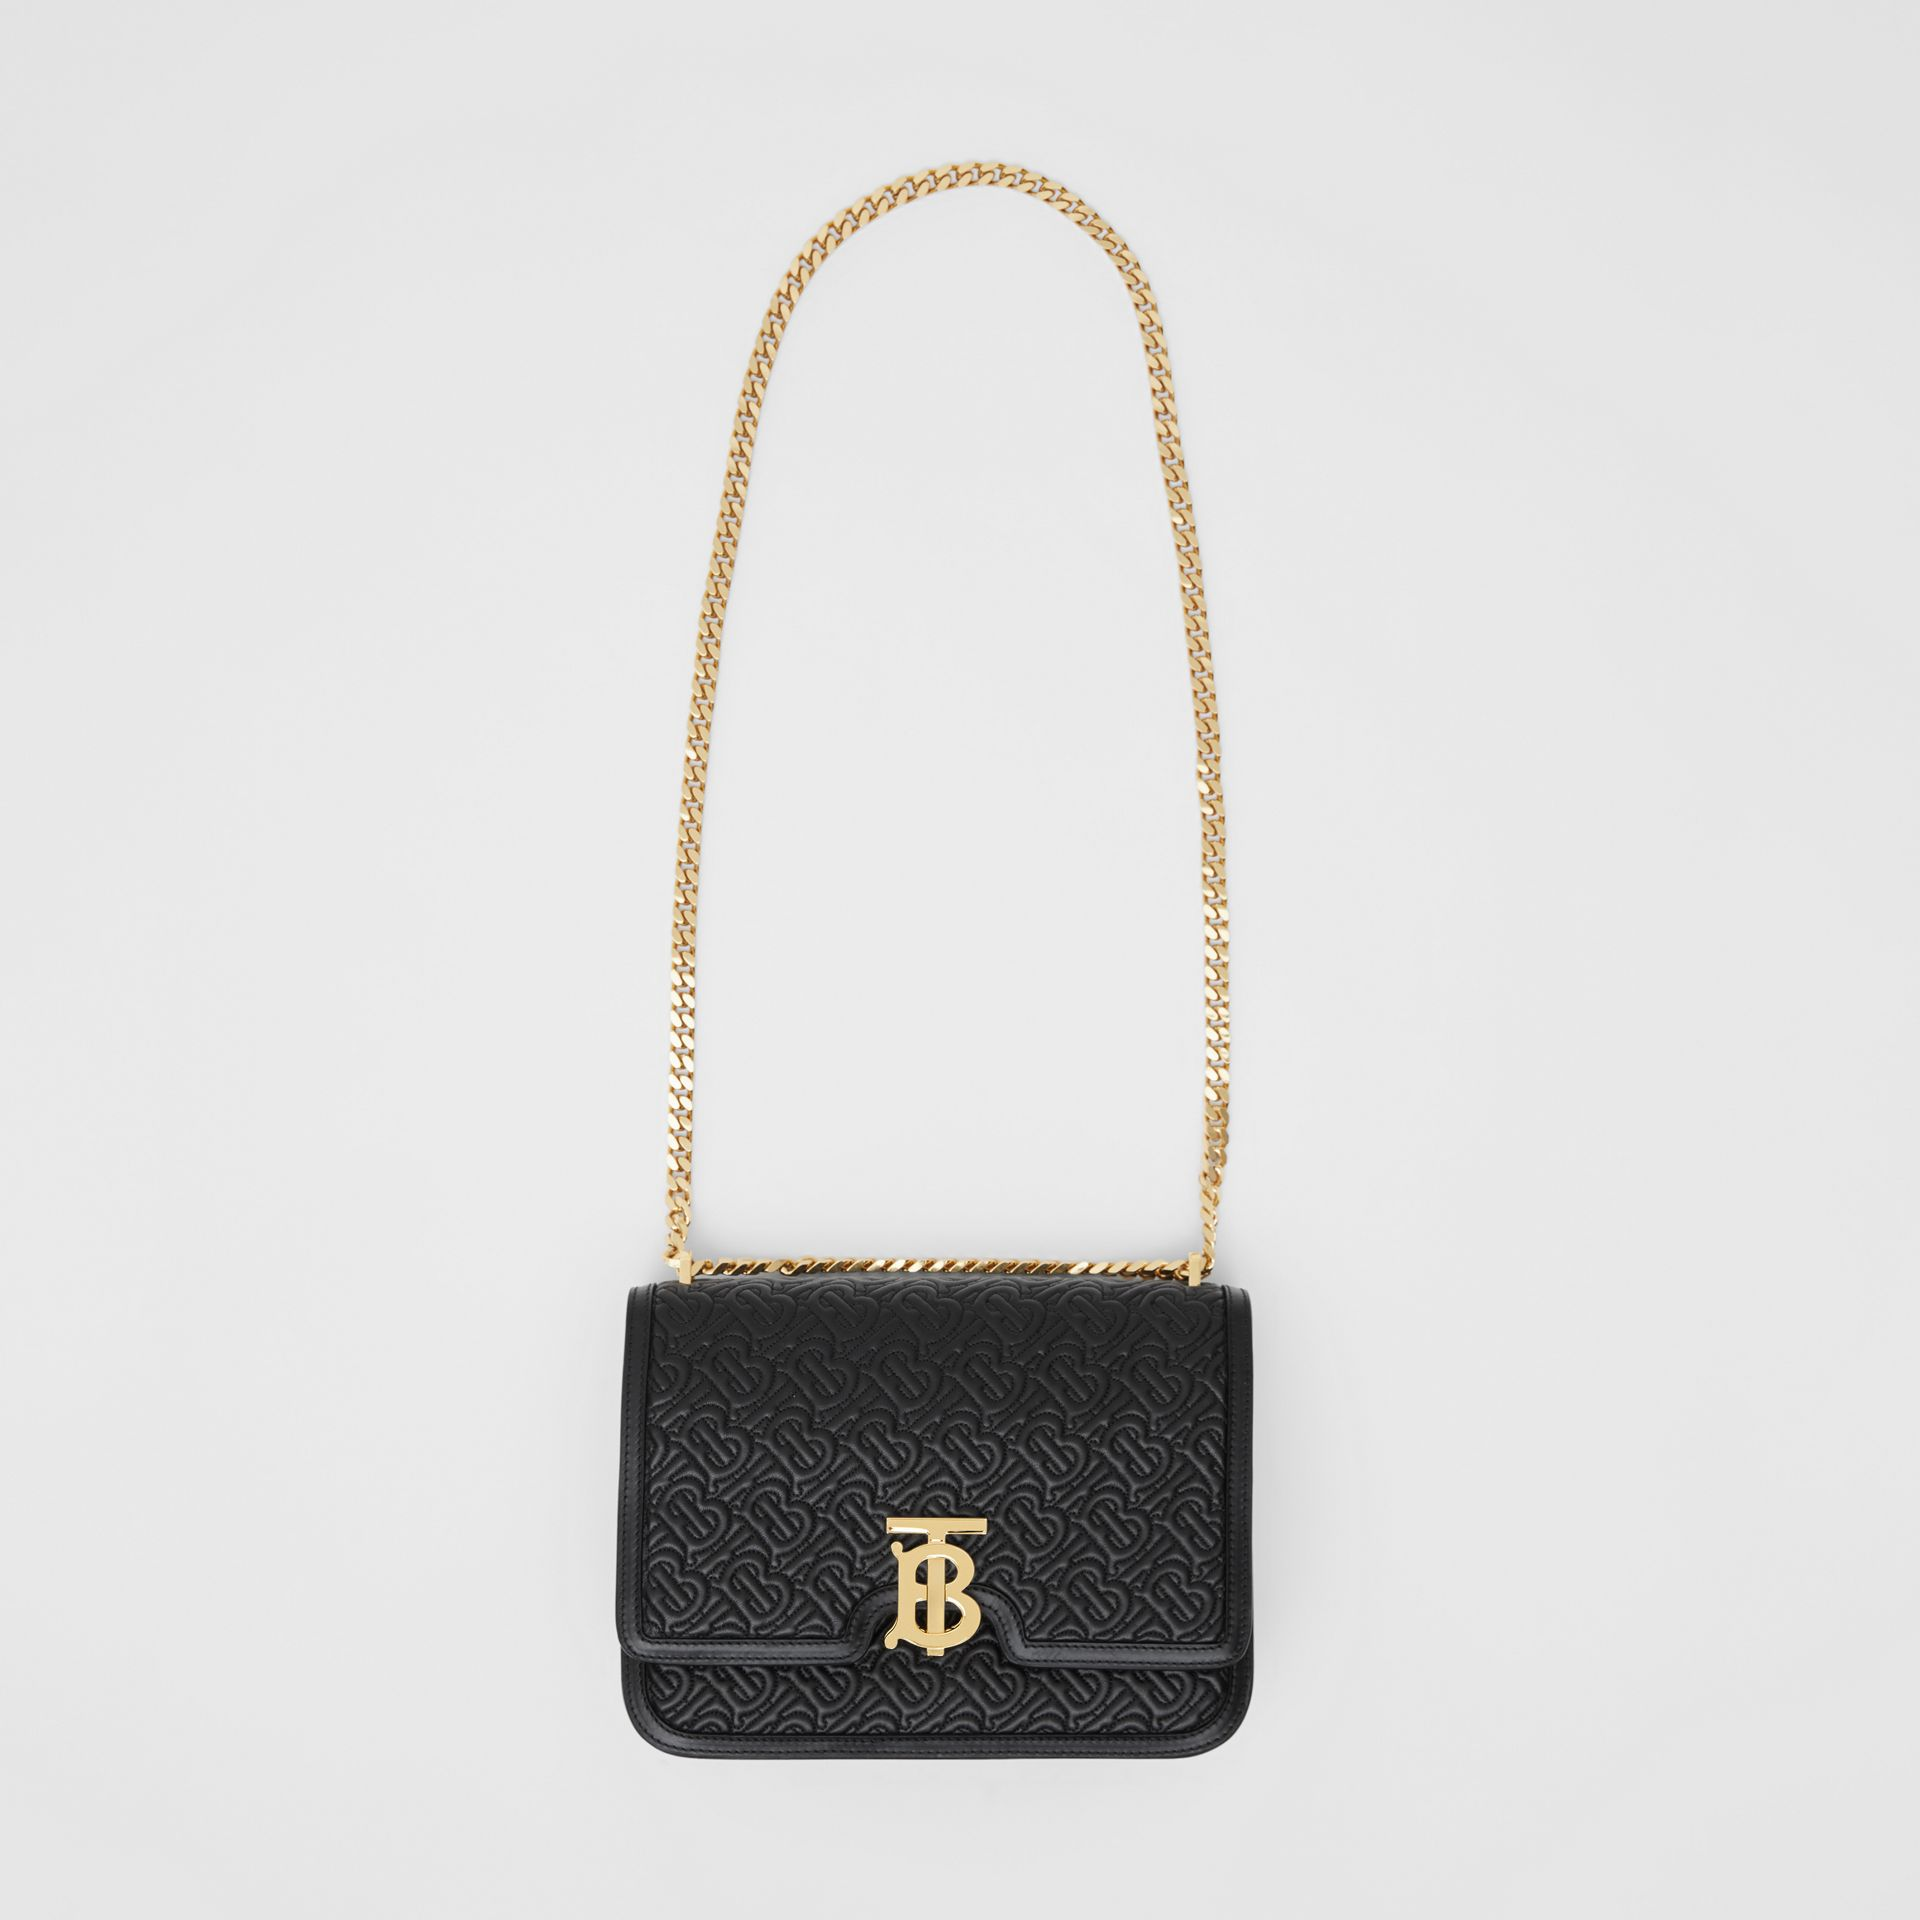 Medium Quilted Monogram Lambskin TB Bag in Black - Women | Burberry - gallery image 3